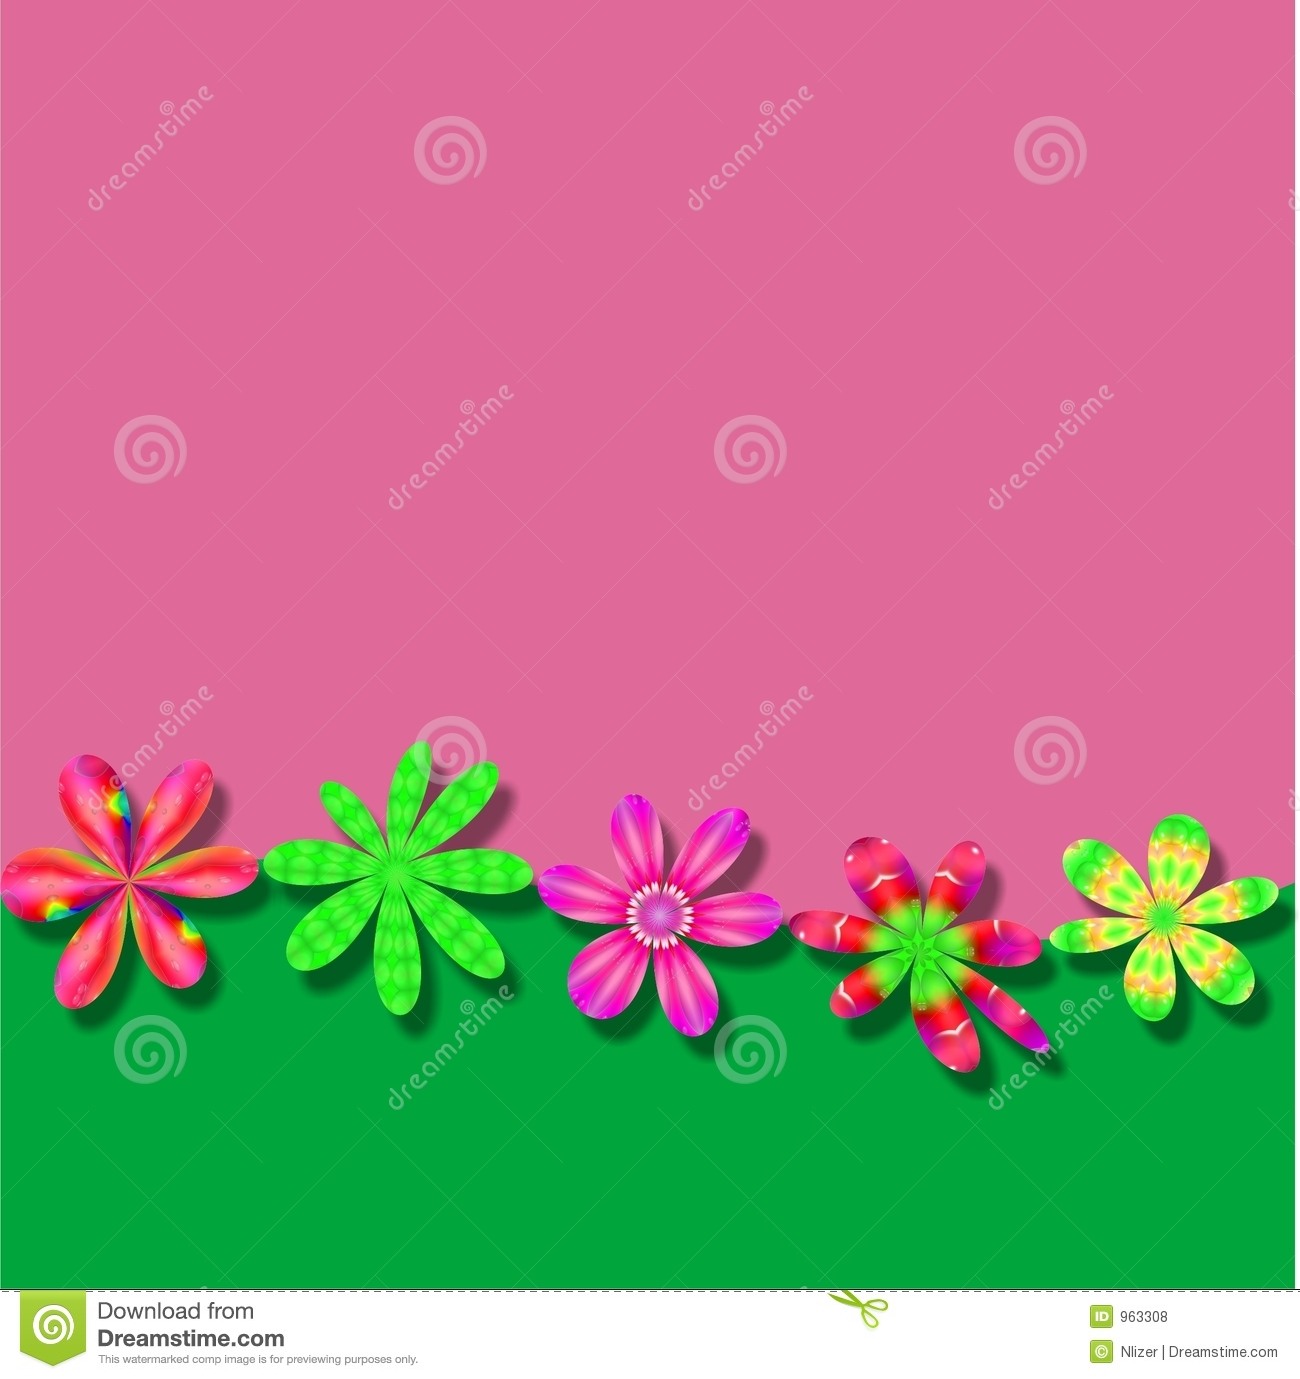 Pink Green White Flower Frame Wallpaper Background Stock ... for Green And Pink Flower Wallpaper  177nar